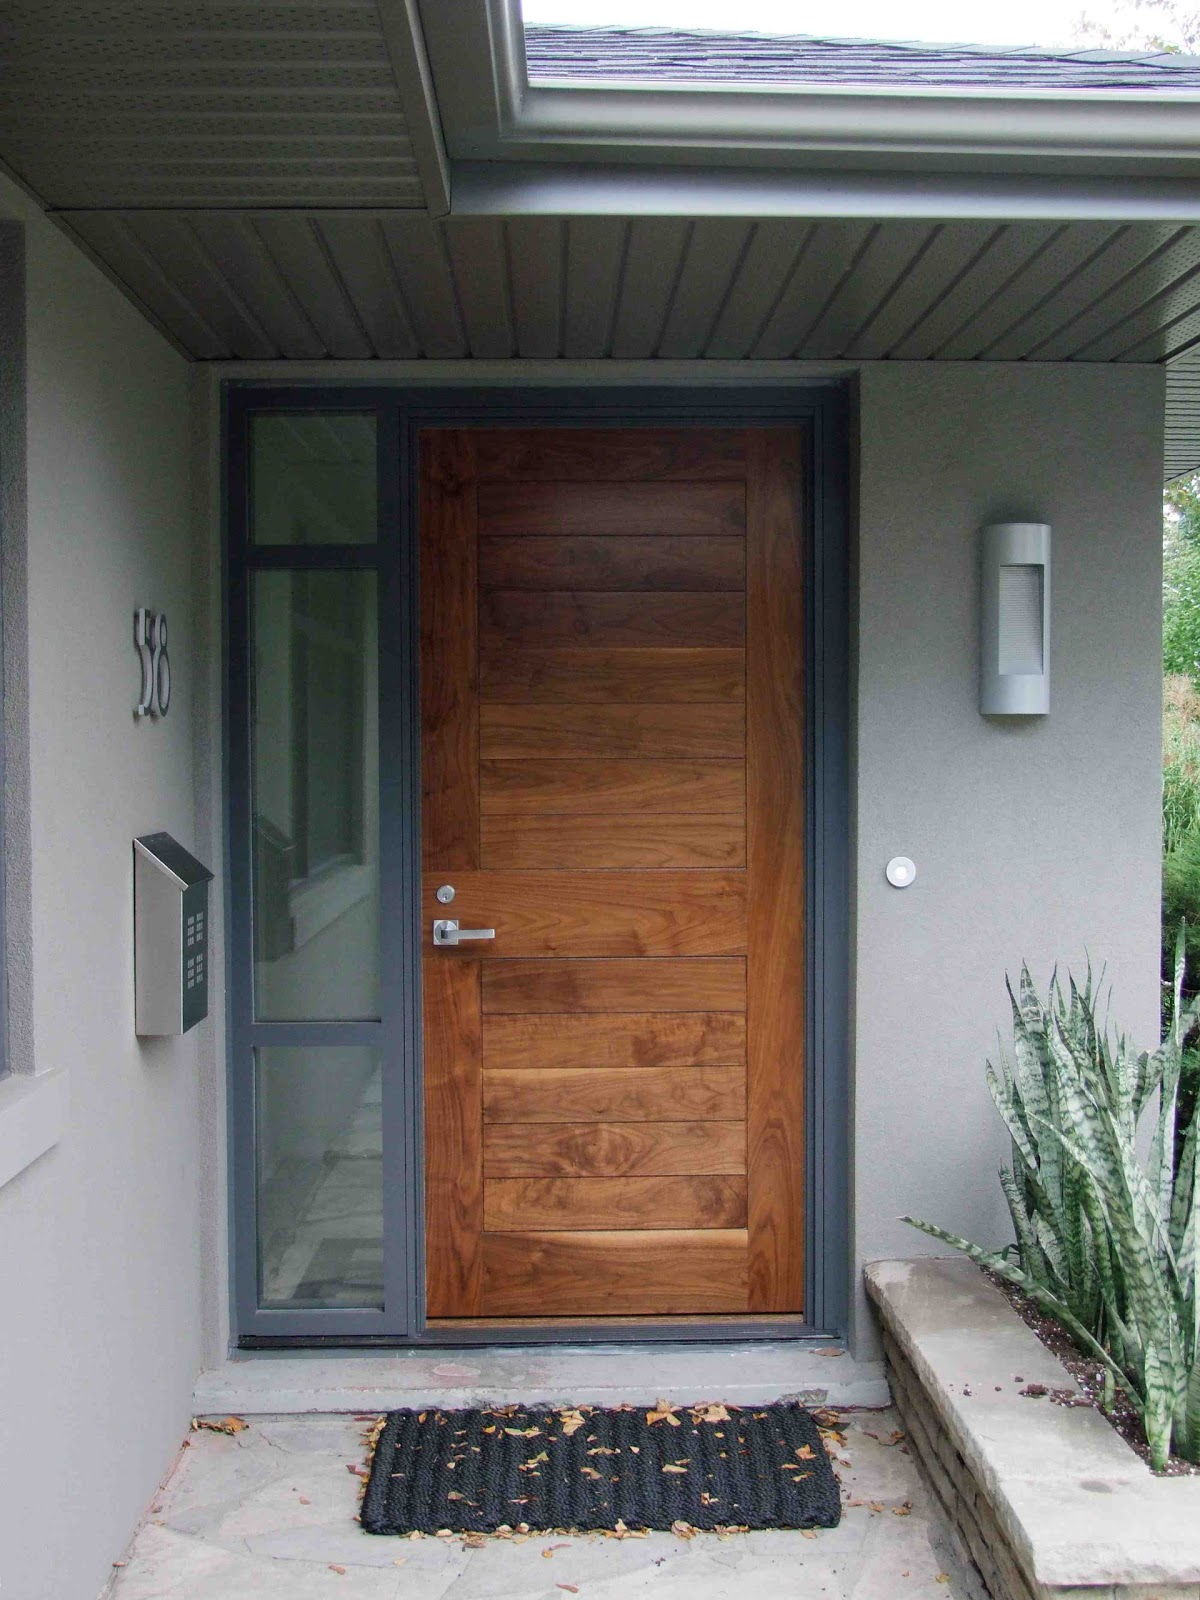 Creed 70 39 s bungalow makes a modern impression for Entry door with window